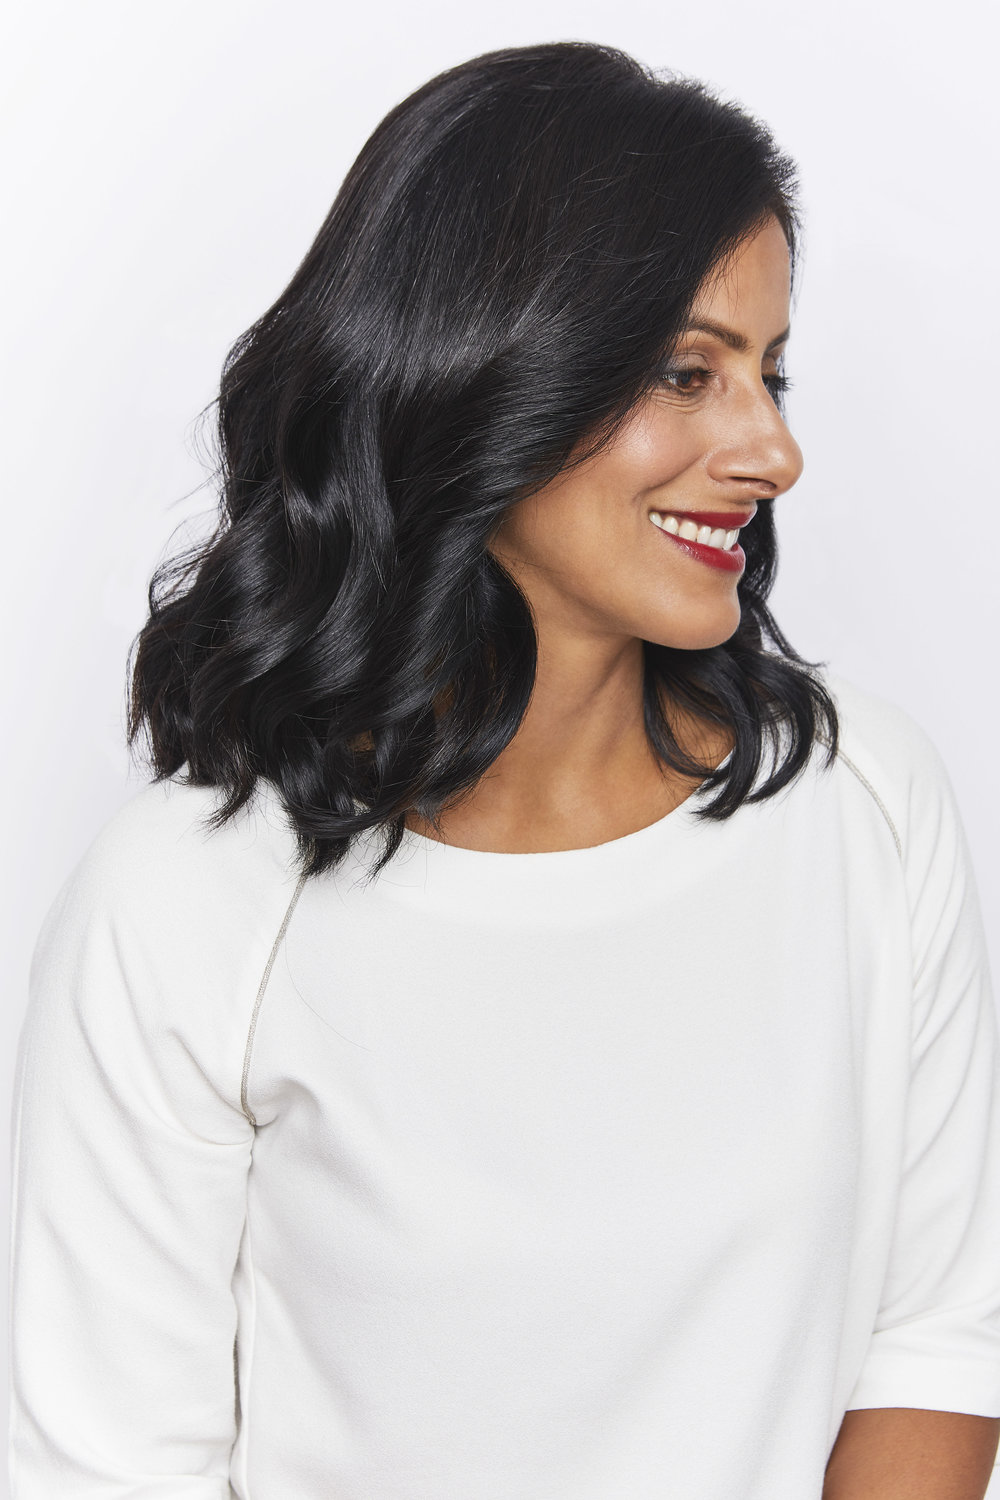 BE CHIC  Bring out your inner fashionista  with these sultry, stylish curls.